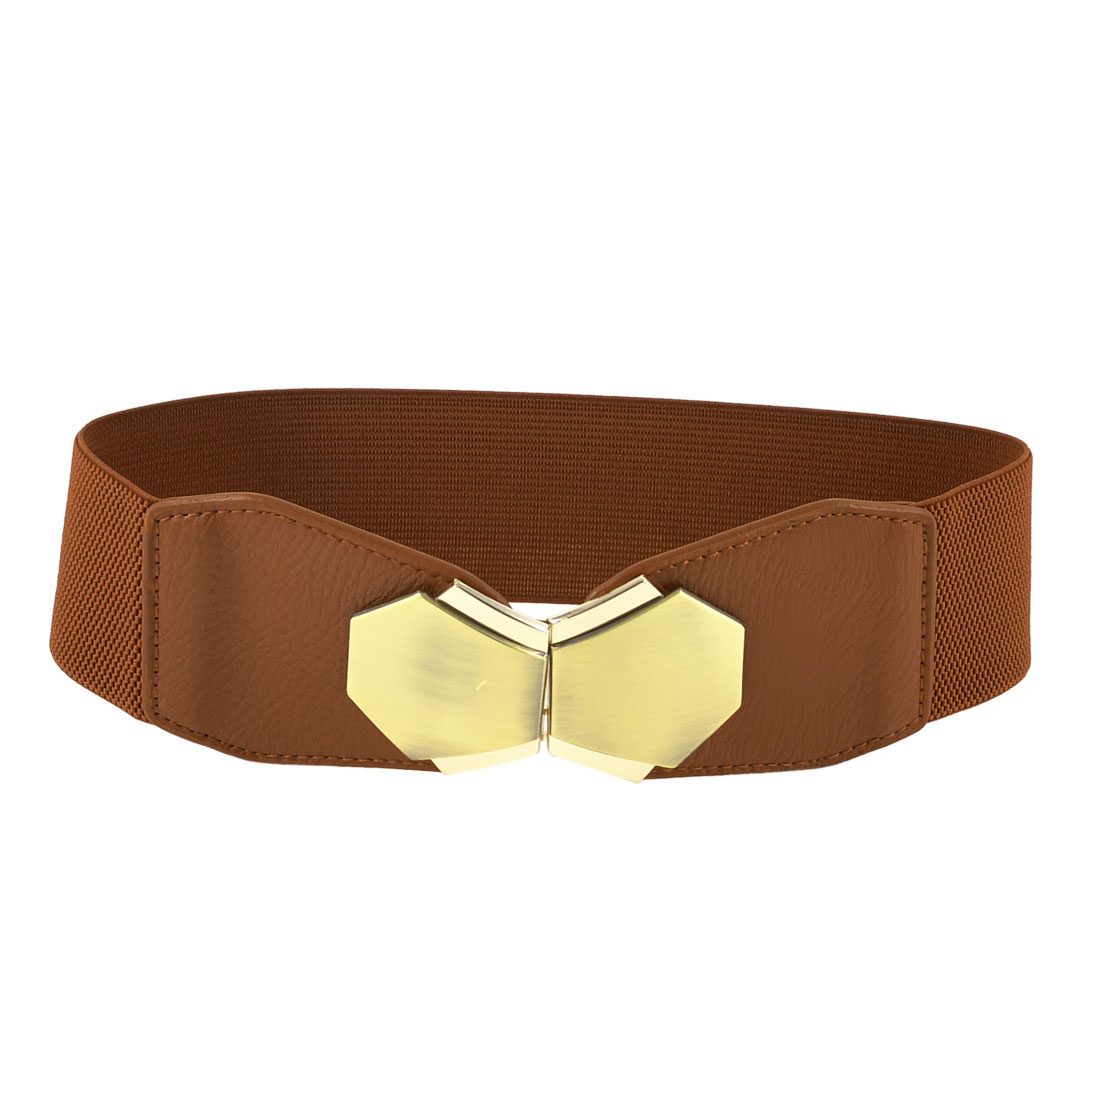 Interlocking Closure Brown Faux Leather Stretchy Cinch Waist Belt for Woman